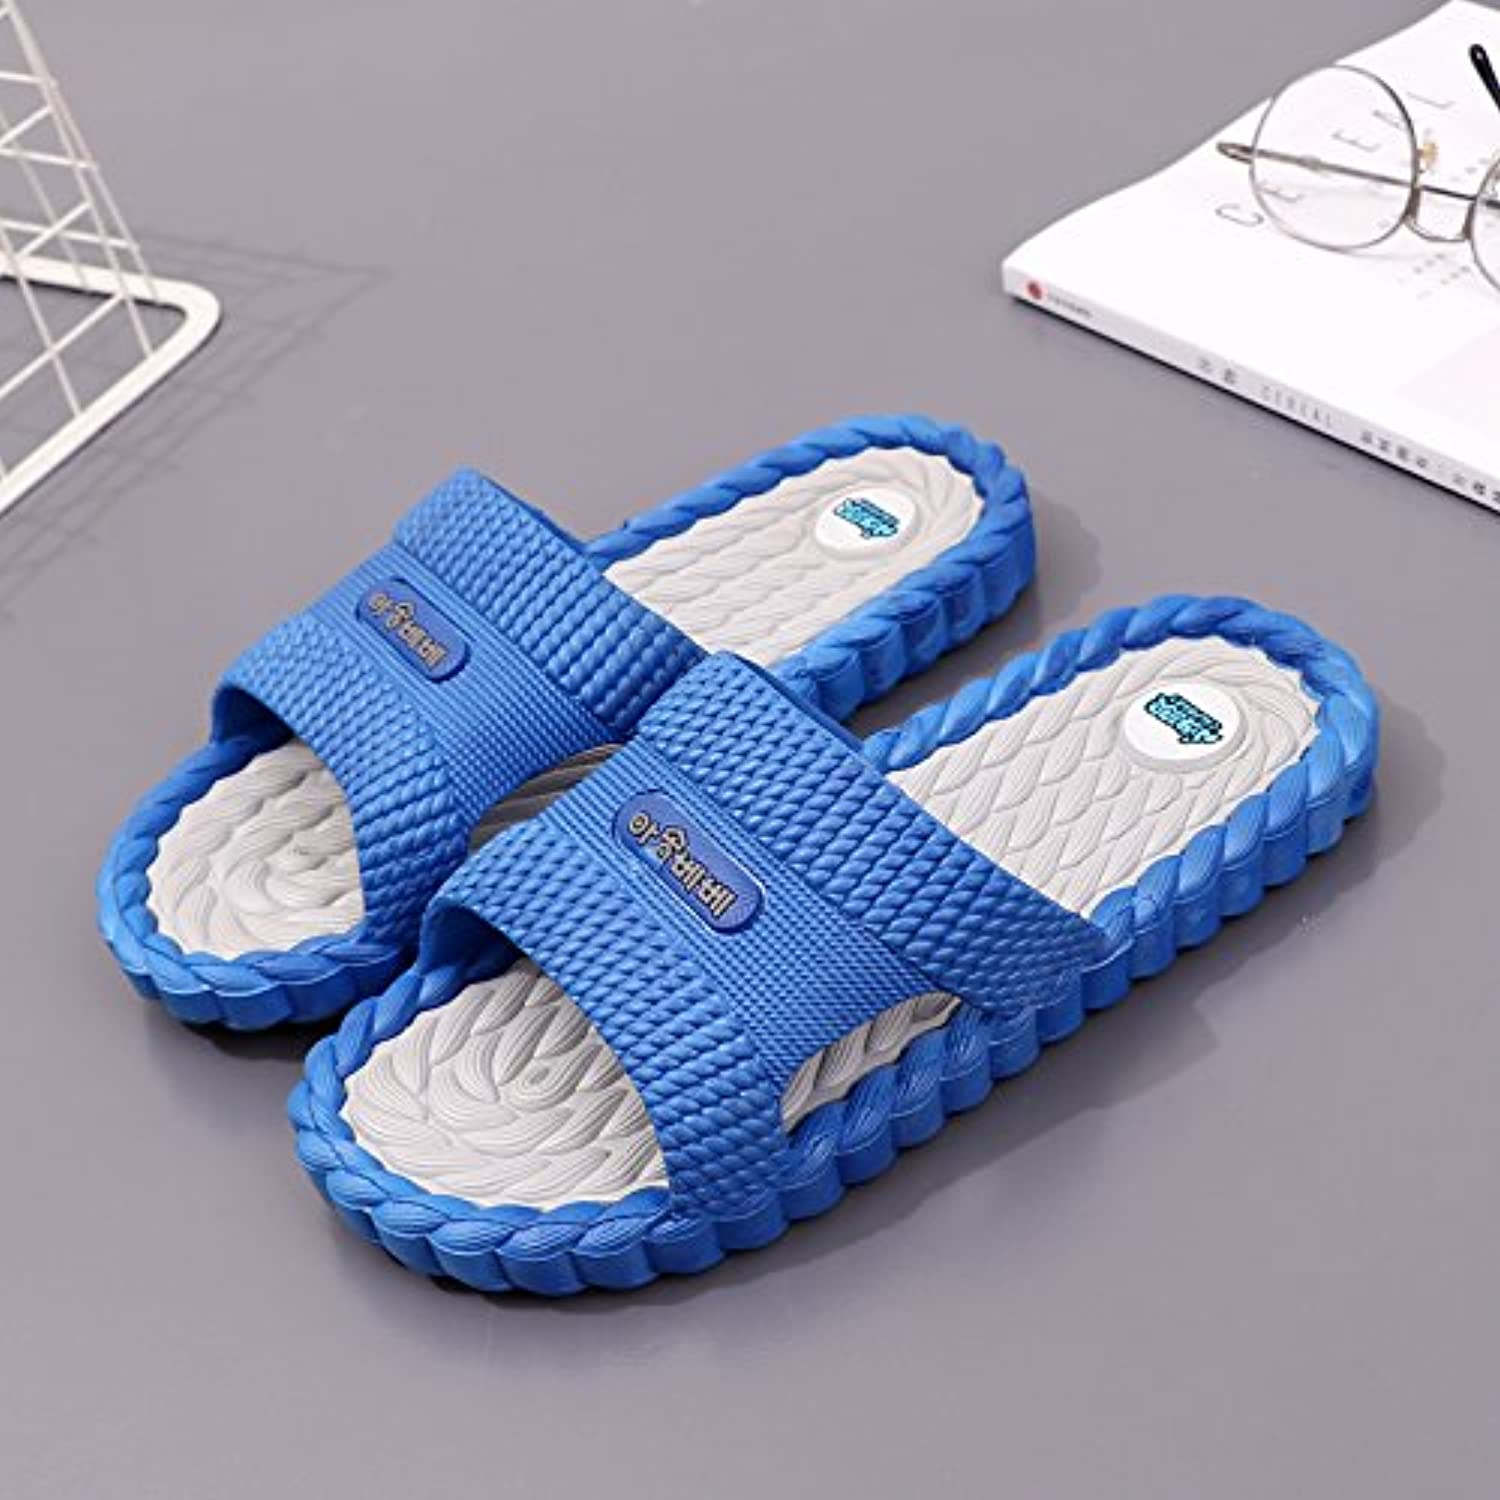 fankou Slippers Male Summer Bathroom Home Interior Bath Massage Soft Anti-Slip Base Men Home Cool Slippers,39,E